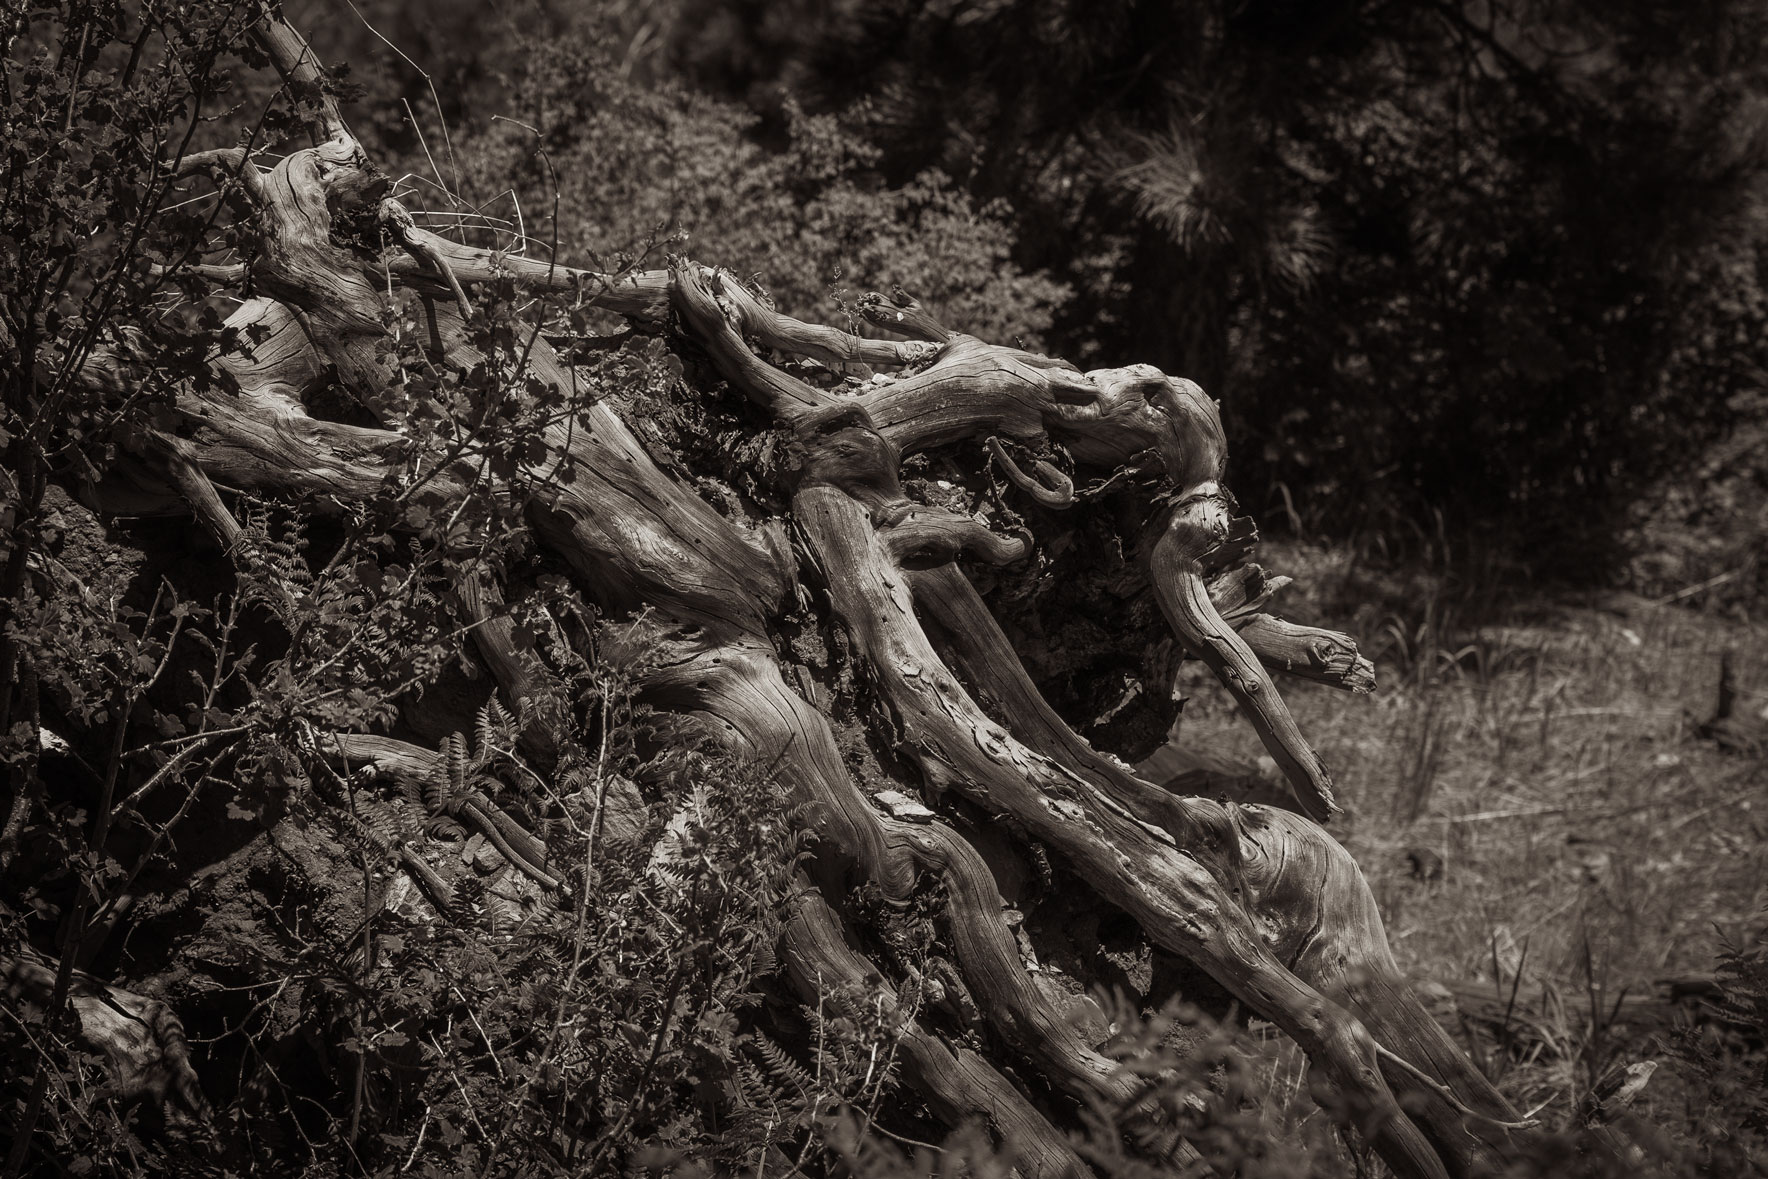 bw-gnarly-roots-sm.jpg